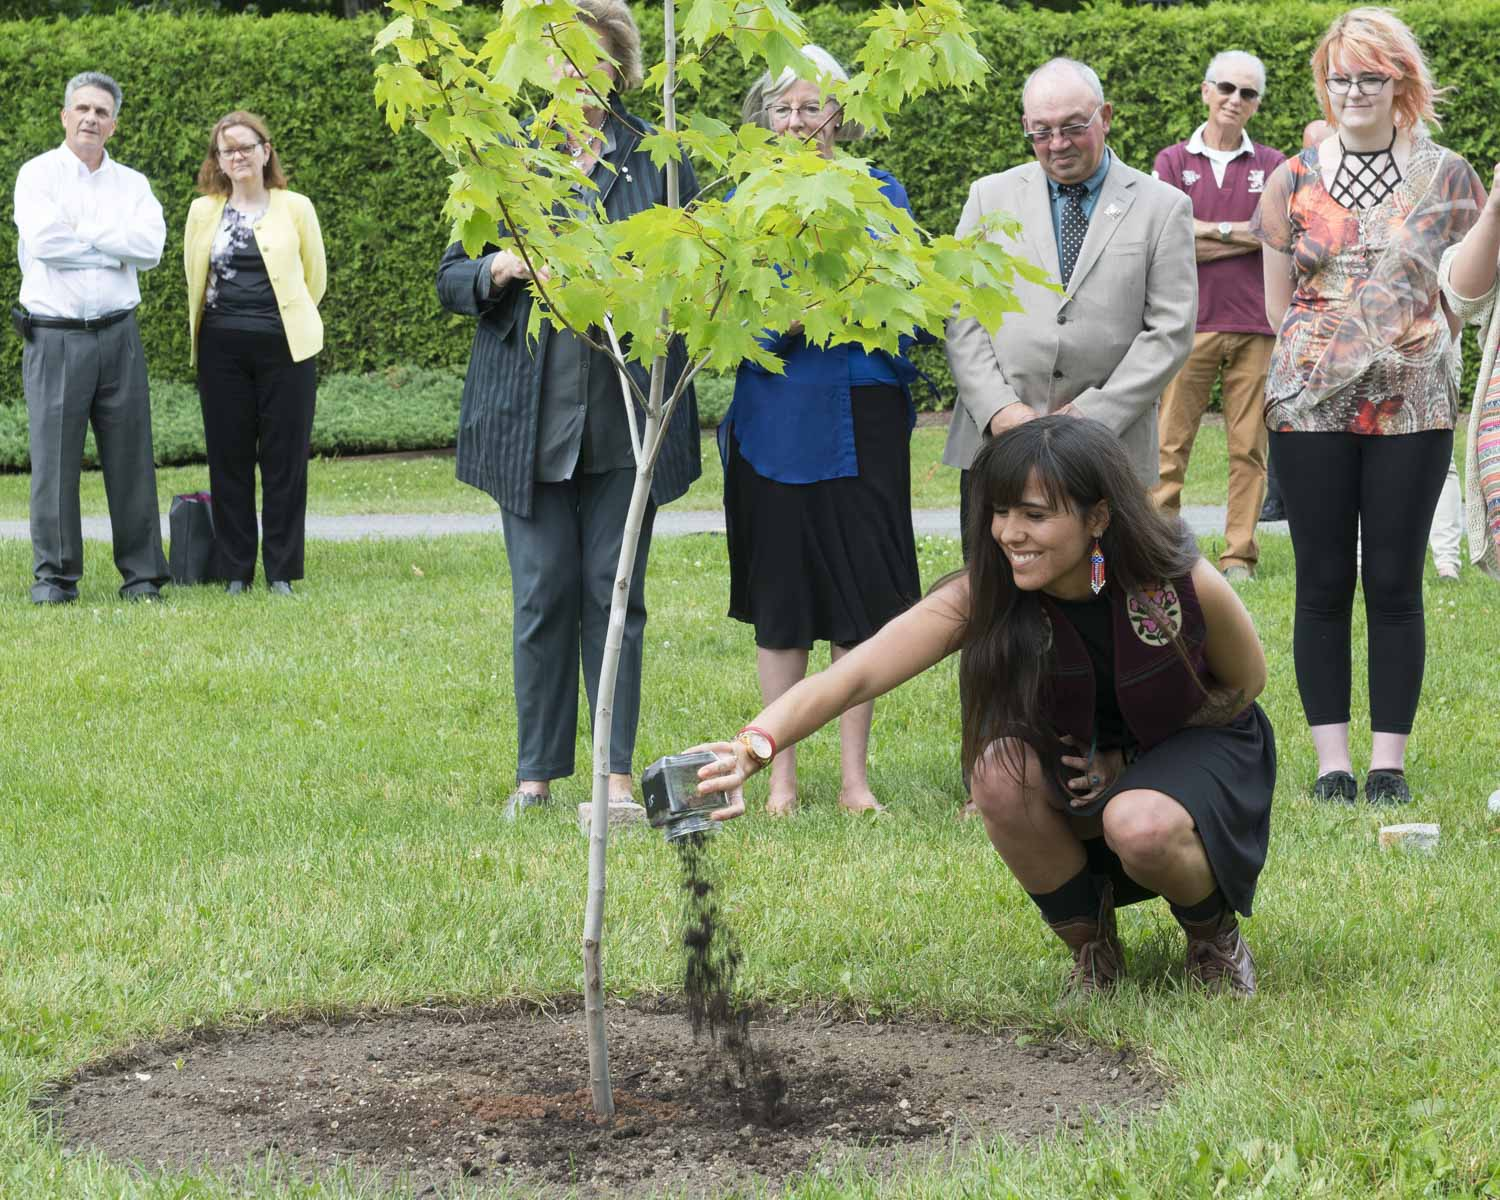 Over 140 commemorative trees grace the grounds of Rideau Hall, the official residence of the governor general of Canada. They mark visits by members of the Royal Family, heads of State and other dignitaries and special events, such as the 150th anniversary of Confederation.